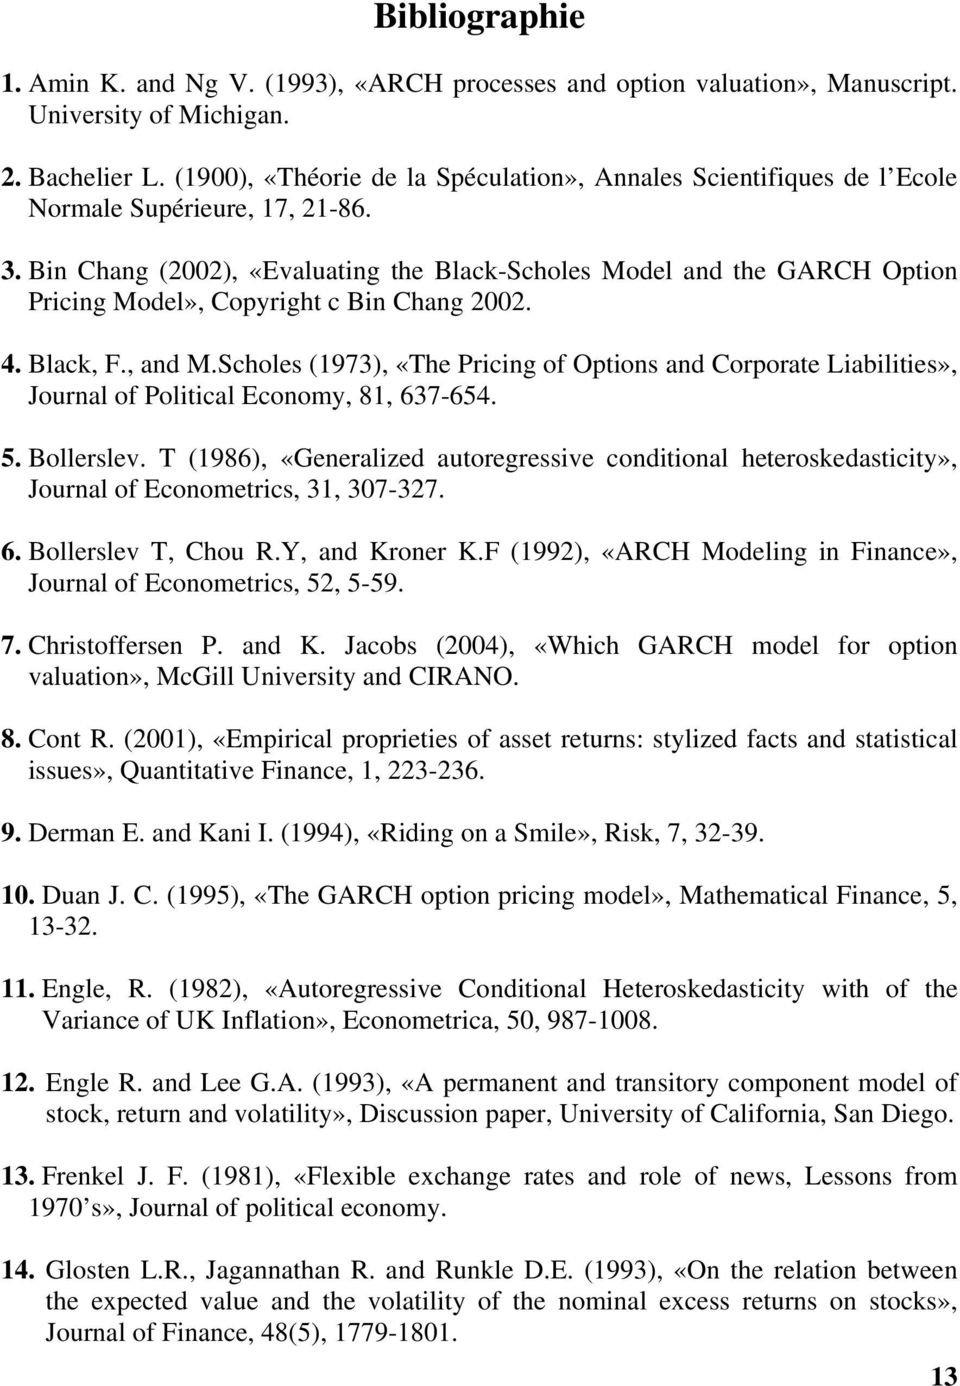 Bin Chang (00), «Evaluaing he Black-Scholes Model and he GARCH Opion Pricing Model», Copyrigh c Bin Chang 00. 4. Black, F., and M.